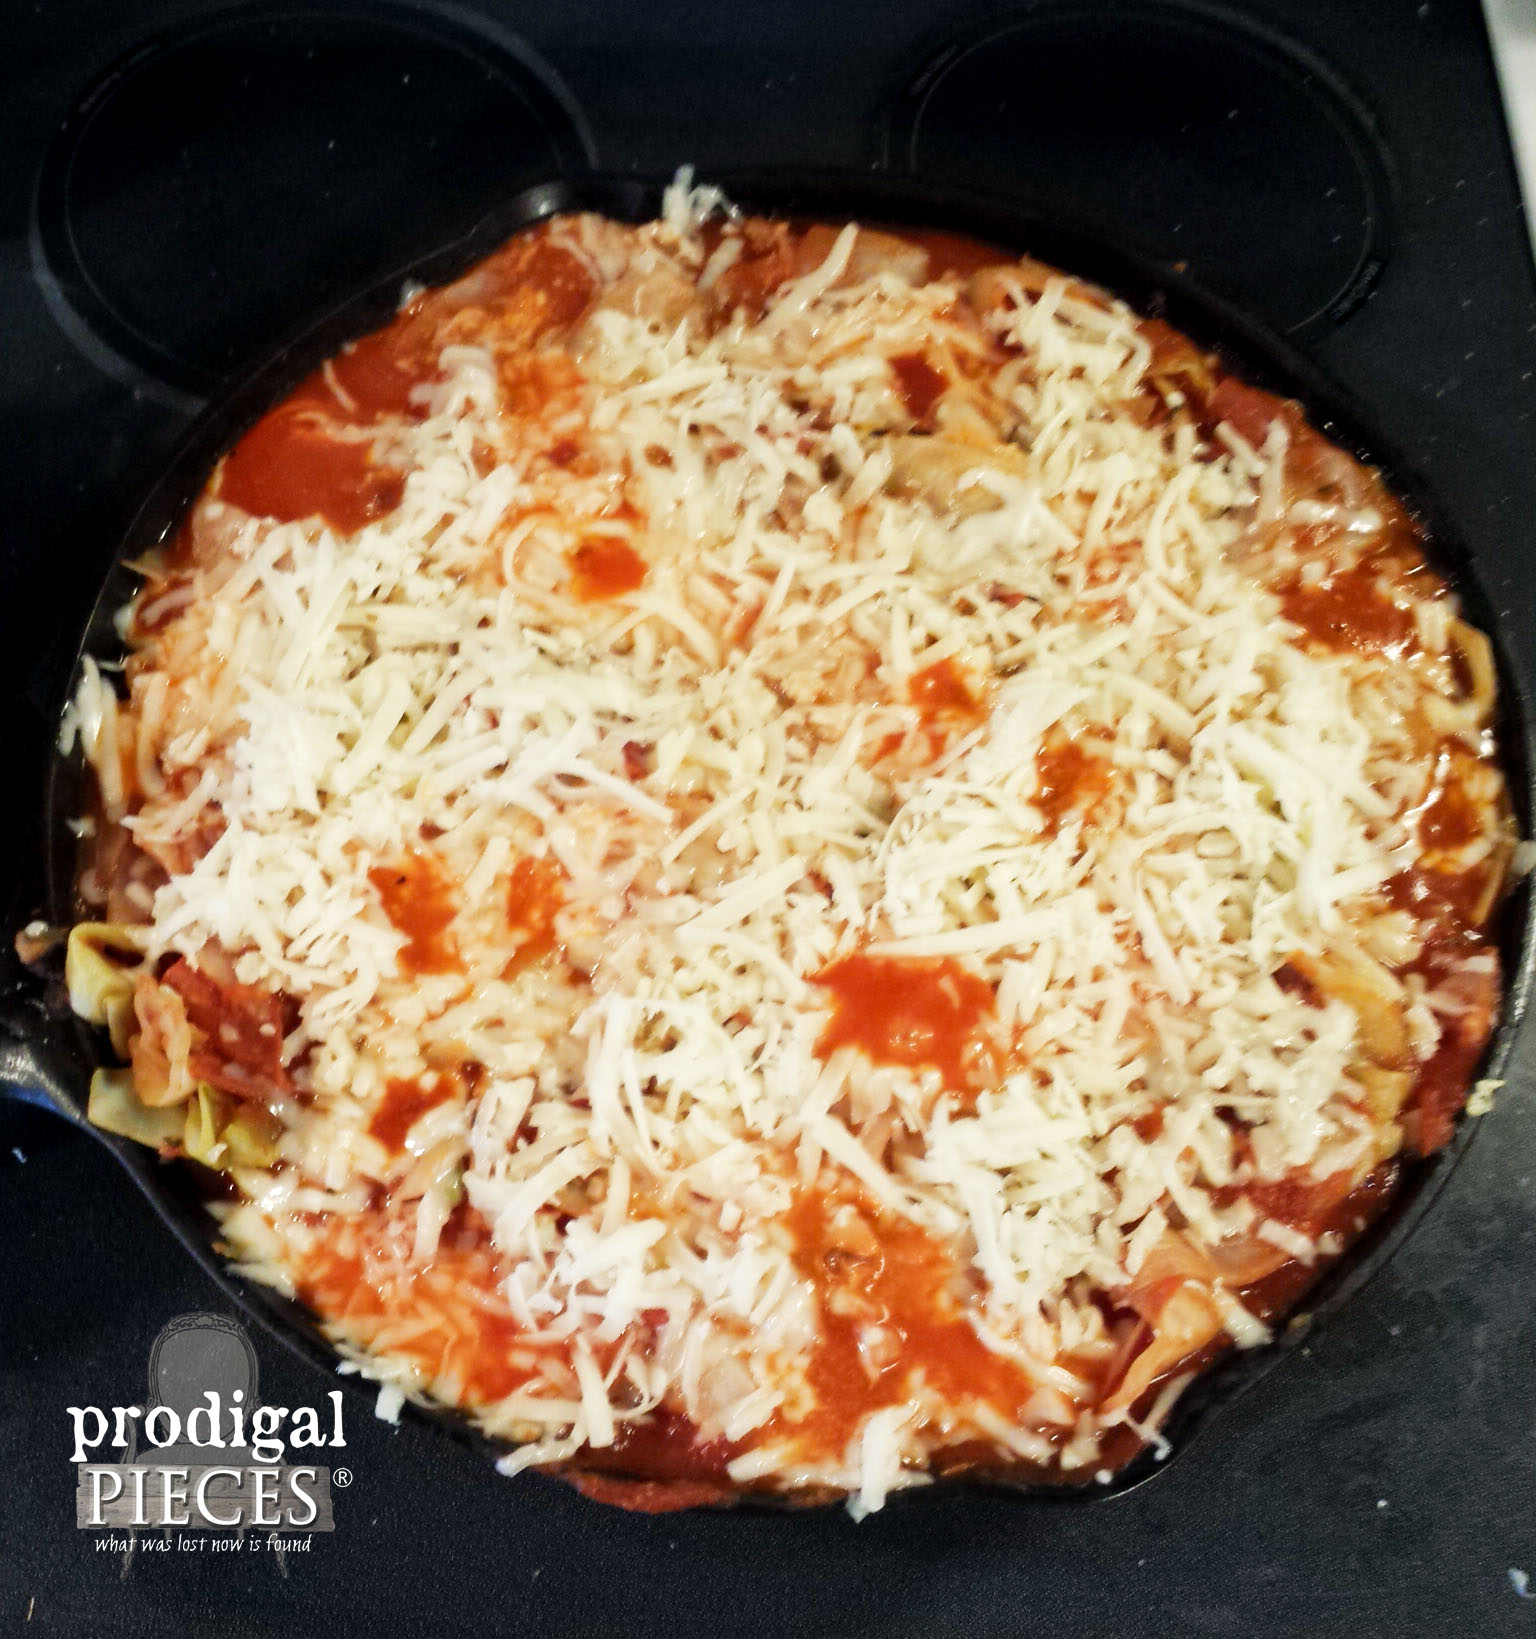 Topping Cabbage Skillet Pizza with Cheese | Prodigal Pieces | www.prodigalpieces.com